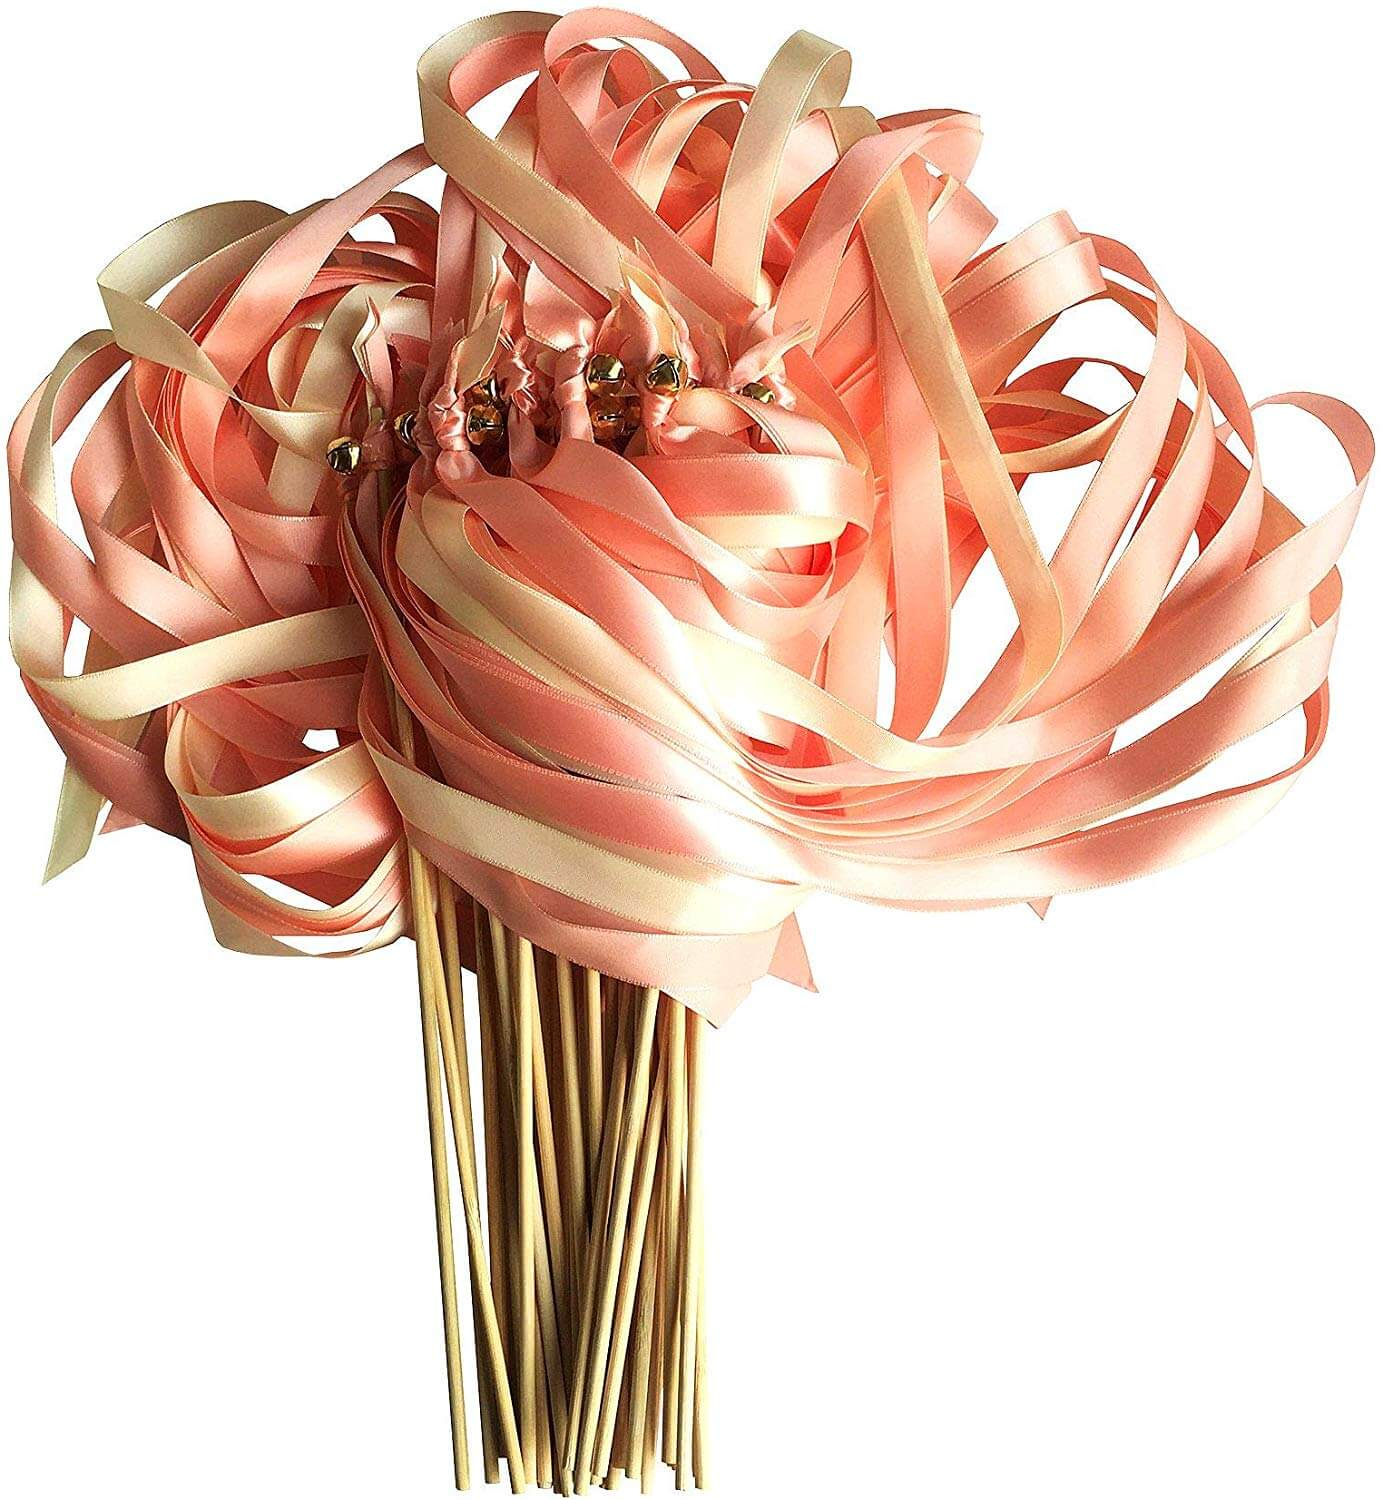 Ribbon Wand Favors With or Without Bell Satin Ribbon Wand Wedding Send Off Wands Guest Ribbon Wands Set of 300 Ribbon Wands Exit Wands